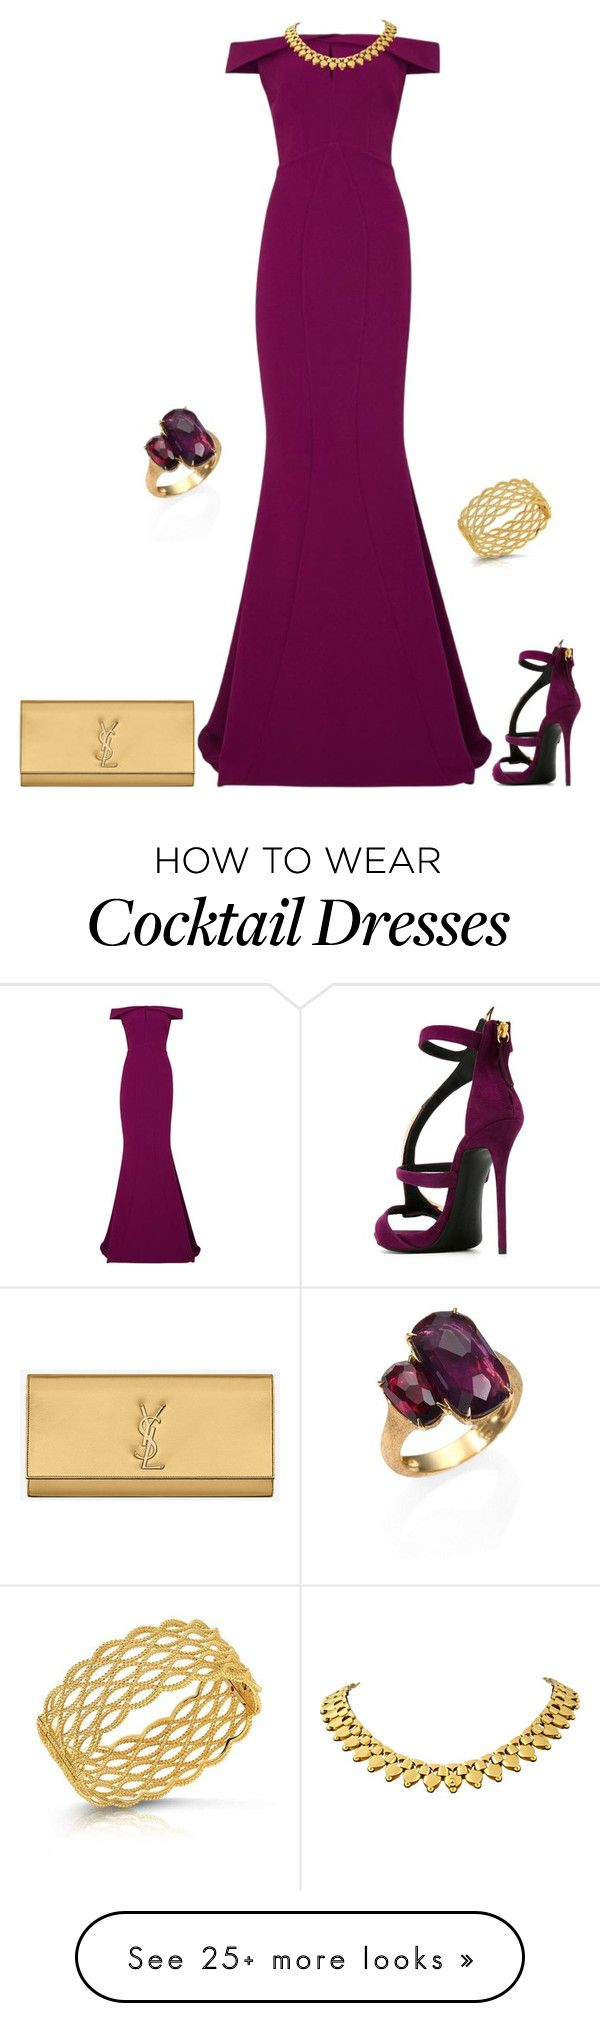 """outfit  2591"" by natalyag on Polyvore featuring Giuseppe Zanotti, Safiyaa, Marco Bicego, Yves Saint Laurent and Roberto Coin"